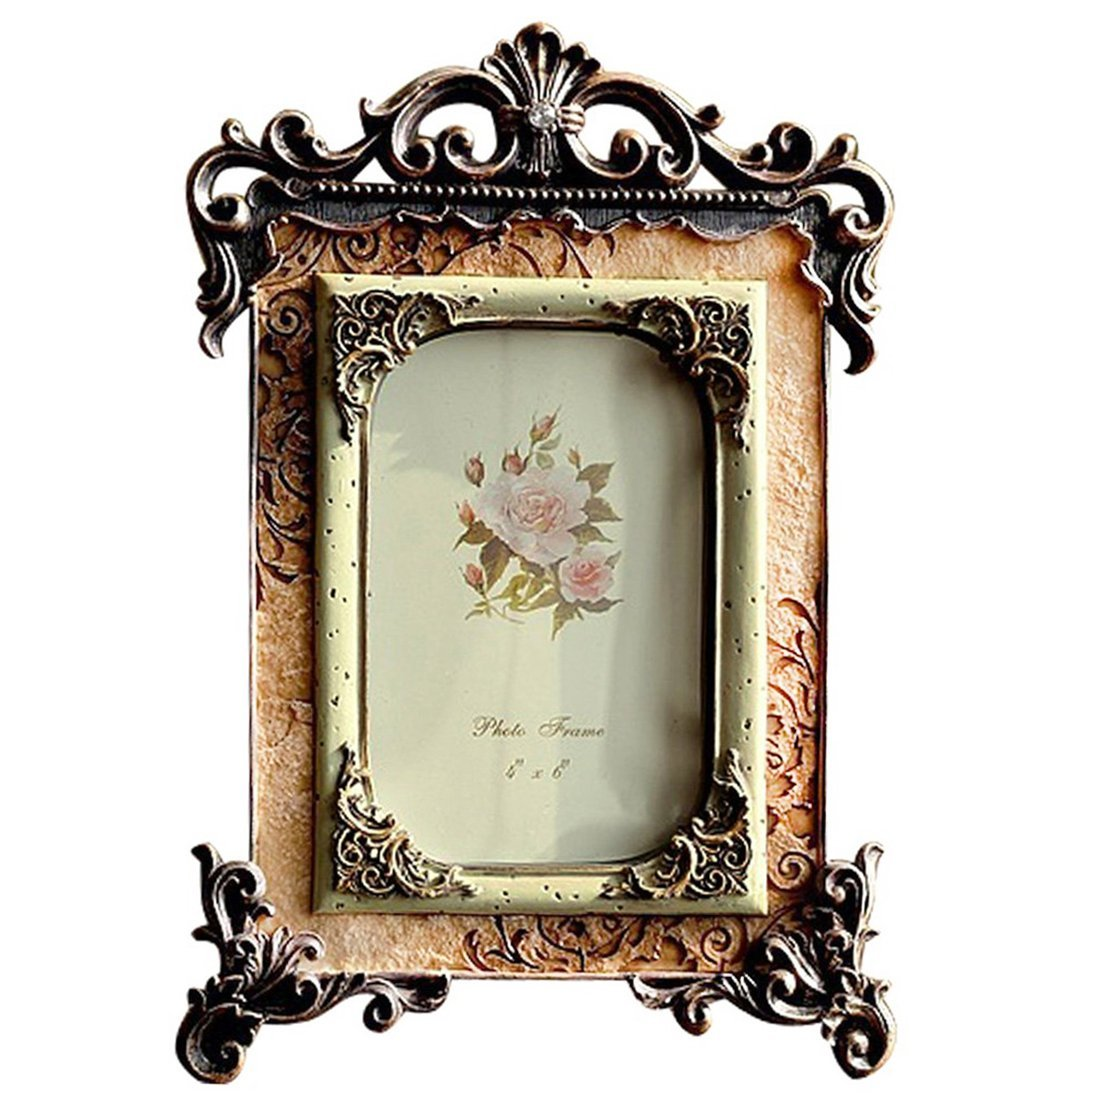 Gift Garden 4 by 6 Inch Vintage Picture Frame Friends Gift Photo Display 4x6